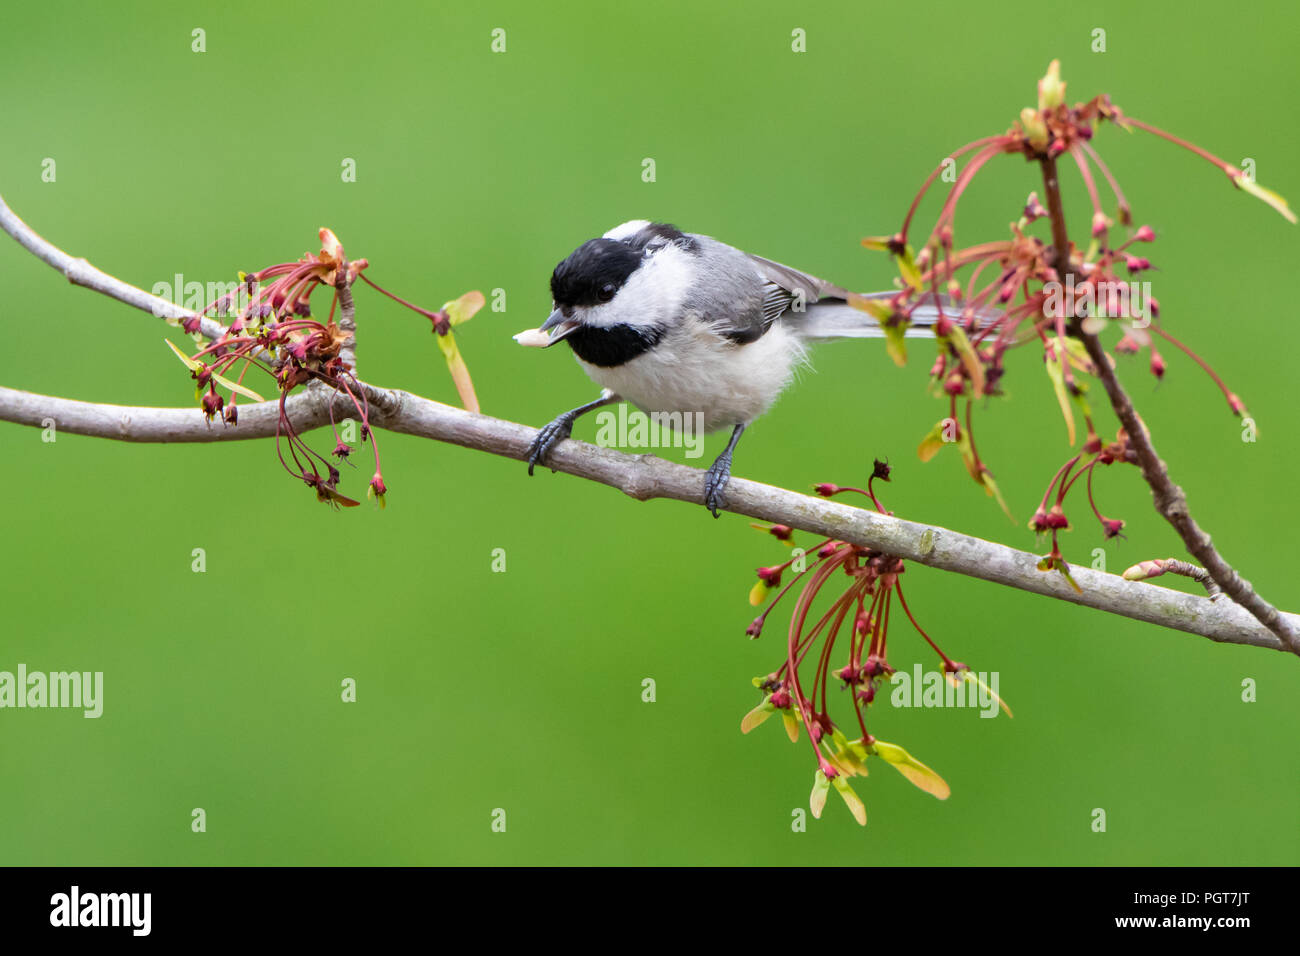 Carolina Chickadee on a Branch of Spring Flowers with Food in It's Beak - Stock Image